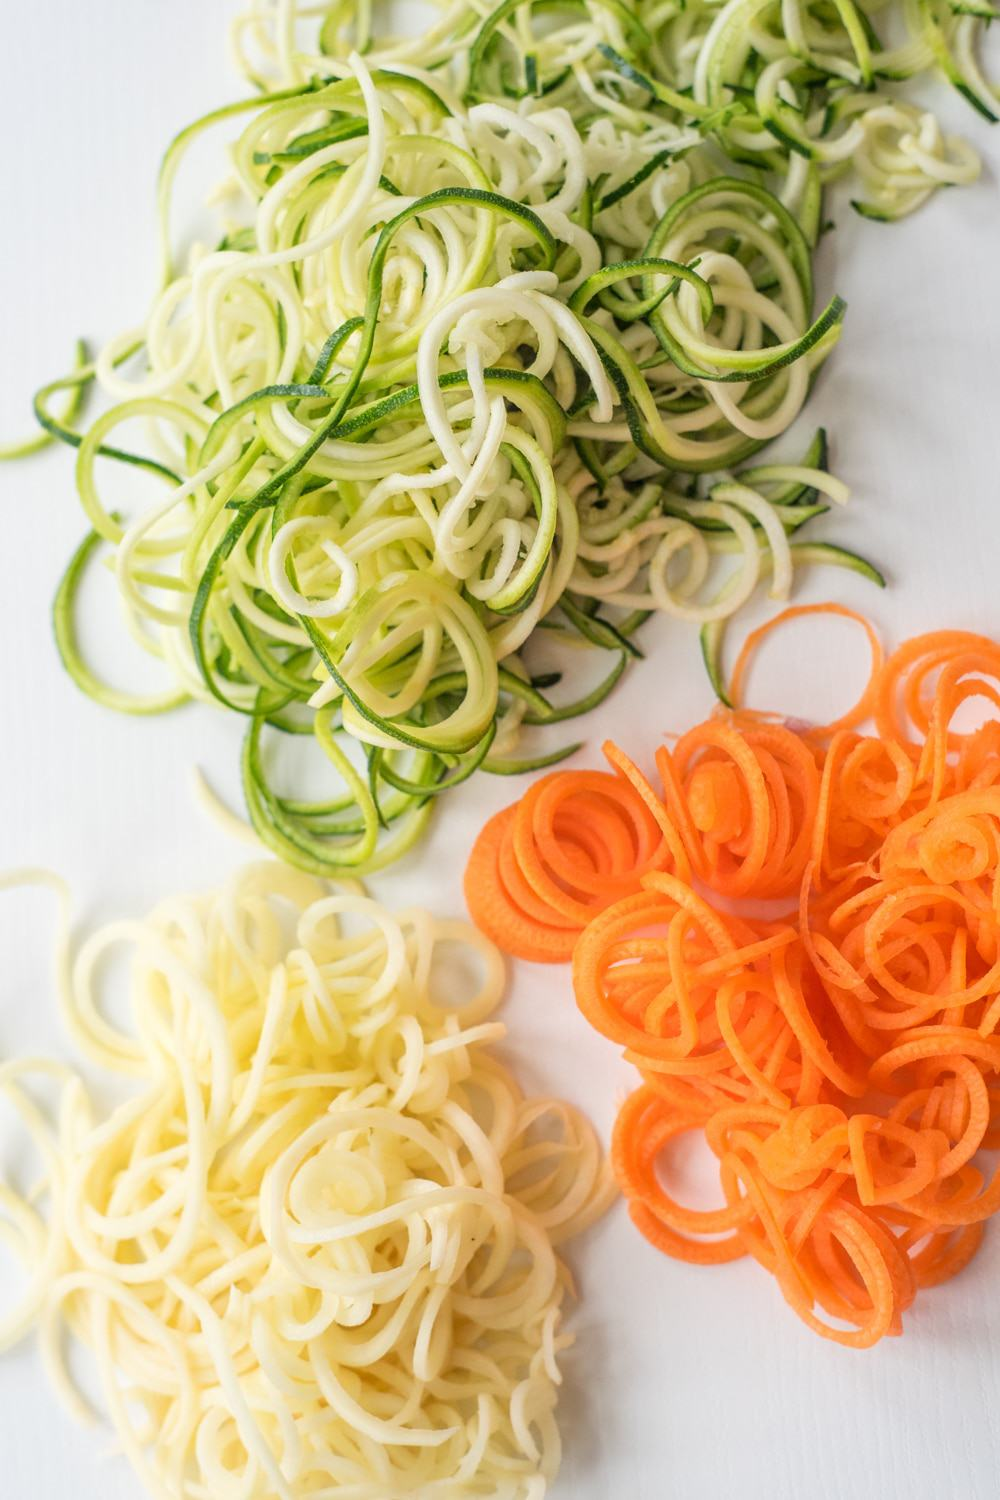 21 quick and easy veggie spiralizer recipes, plus all the tips you need to know to spiralize your veggie to make skinny delicious low-carb recipes!